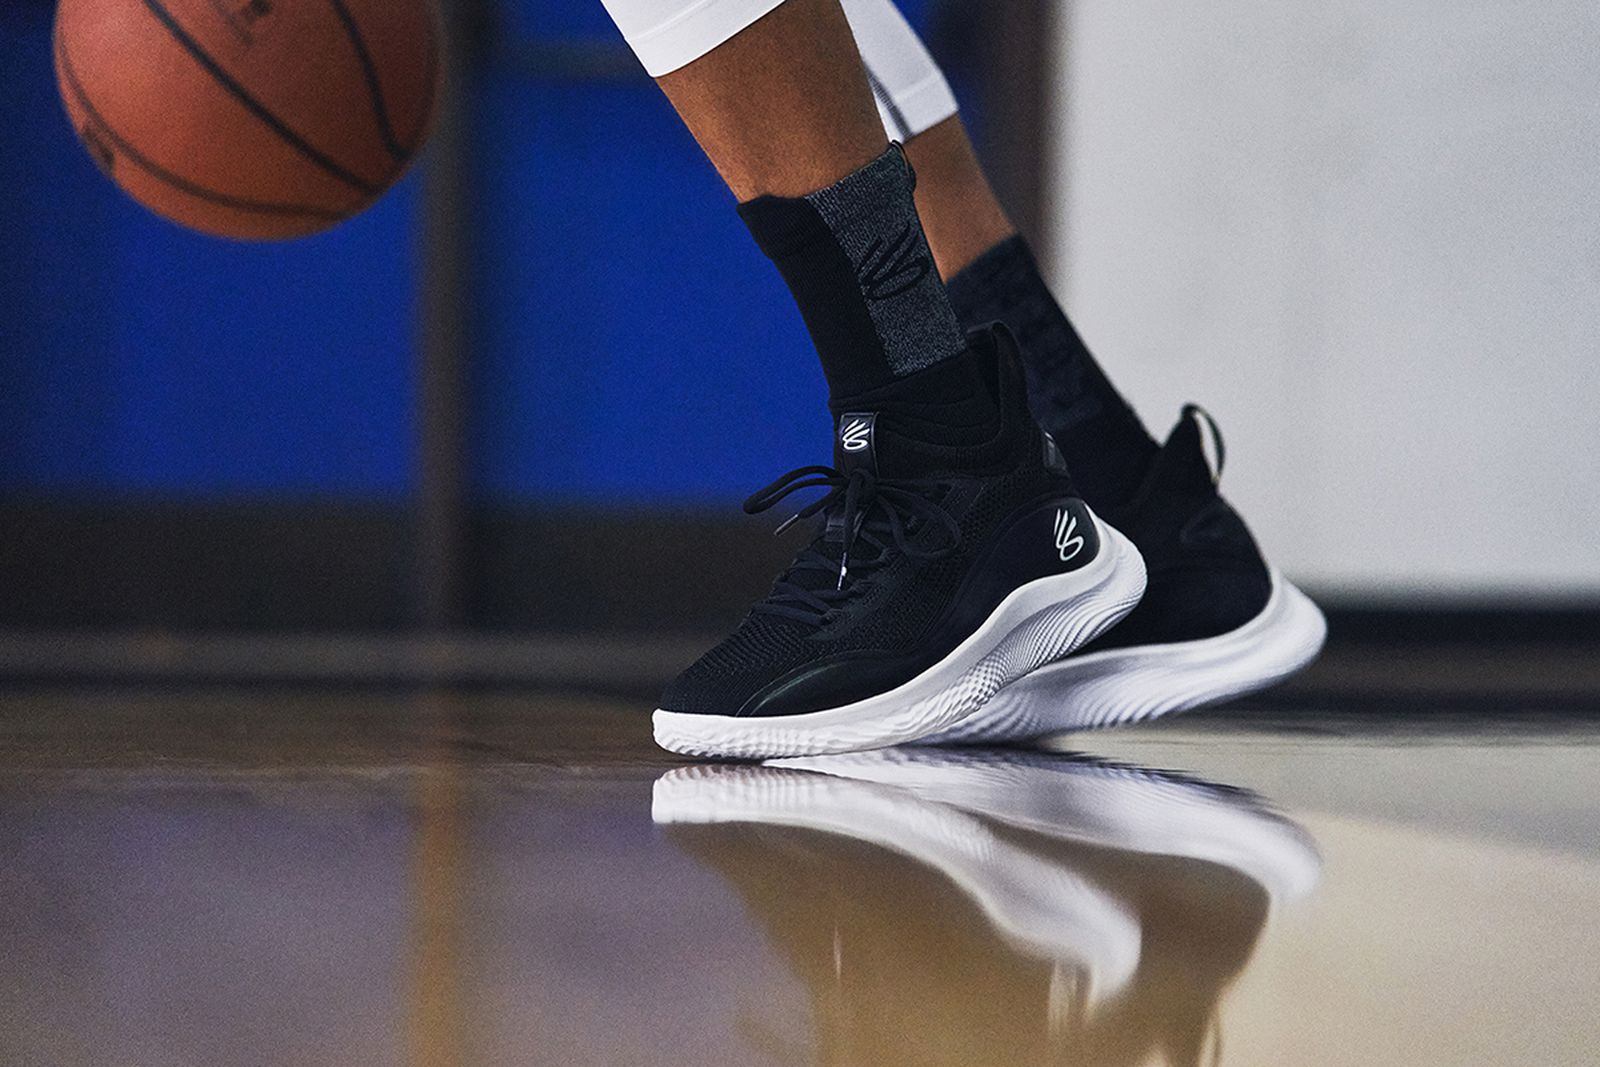 curry-brand-curry-flow-8-release-date-price-04